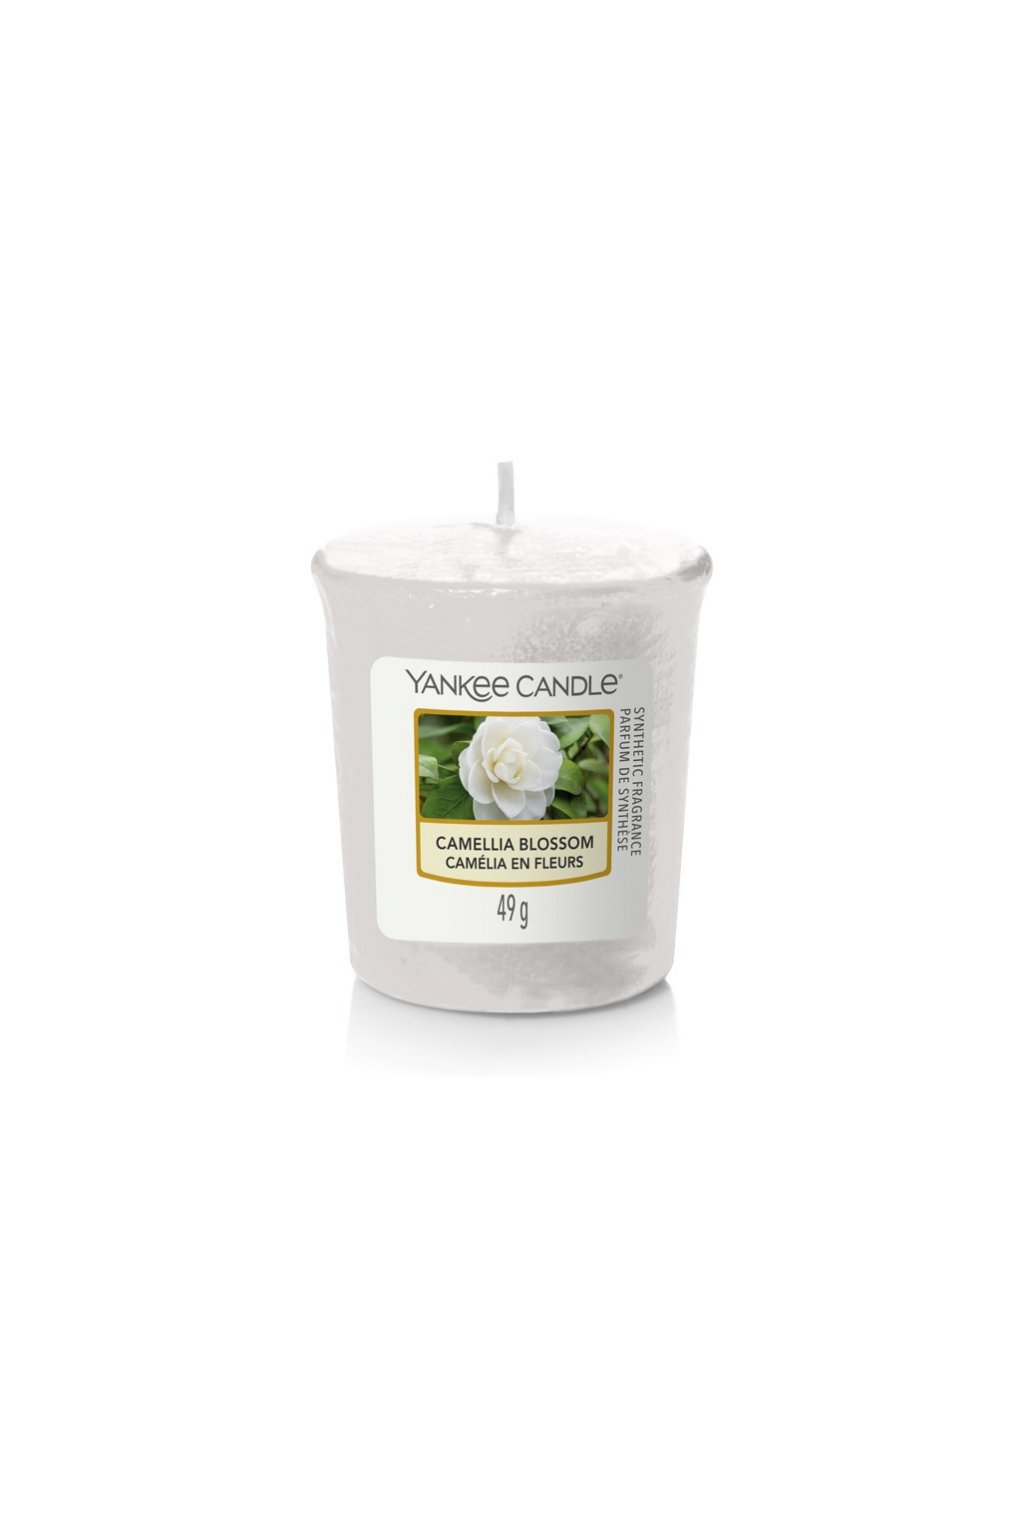 Yankee Candle Camellia Blossom 49g